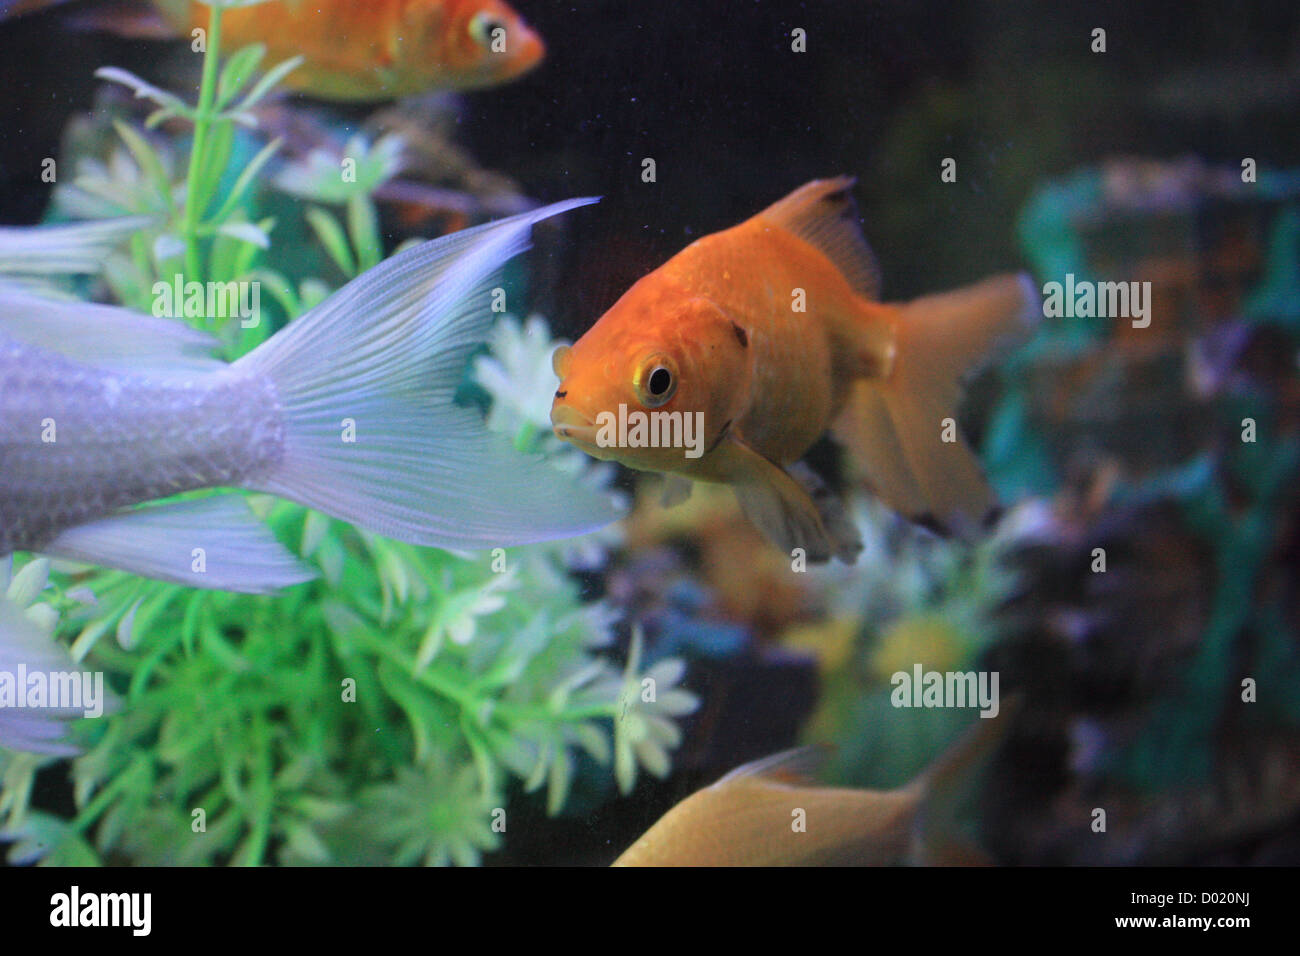 Fish aquarium tanks for sale - Freshwater Fish Aquarium Fish Tropical Fish Pictures Of Fish Fish Tanks Fish For Sale All About Fish Salt Water Fish Che